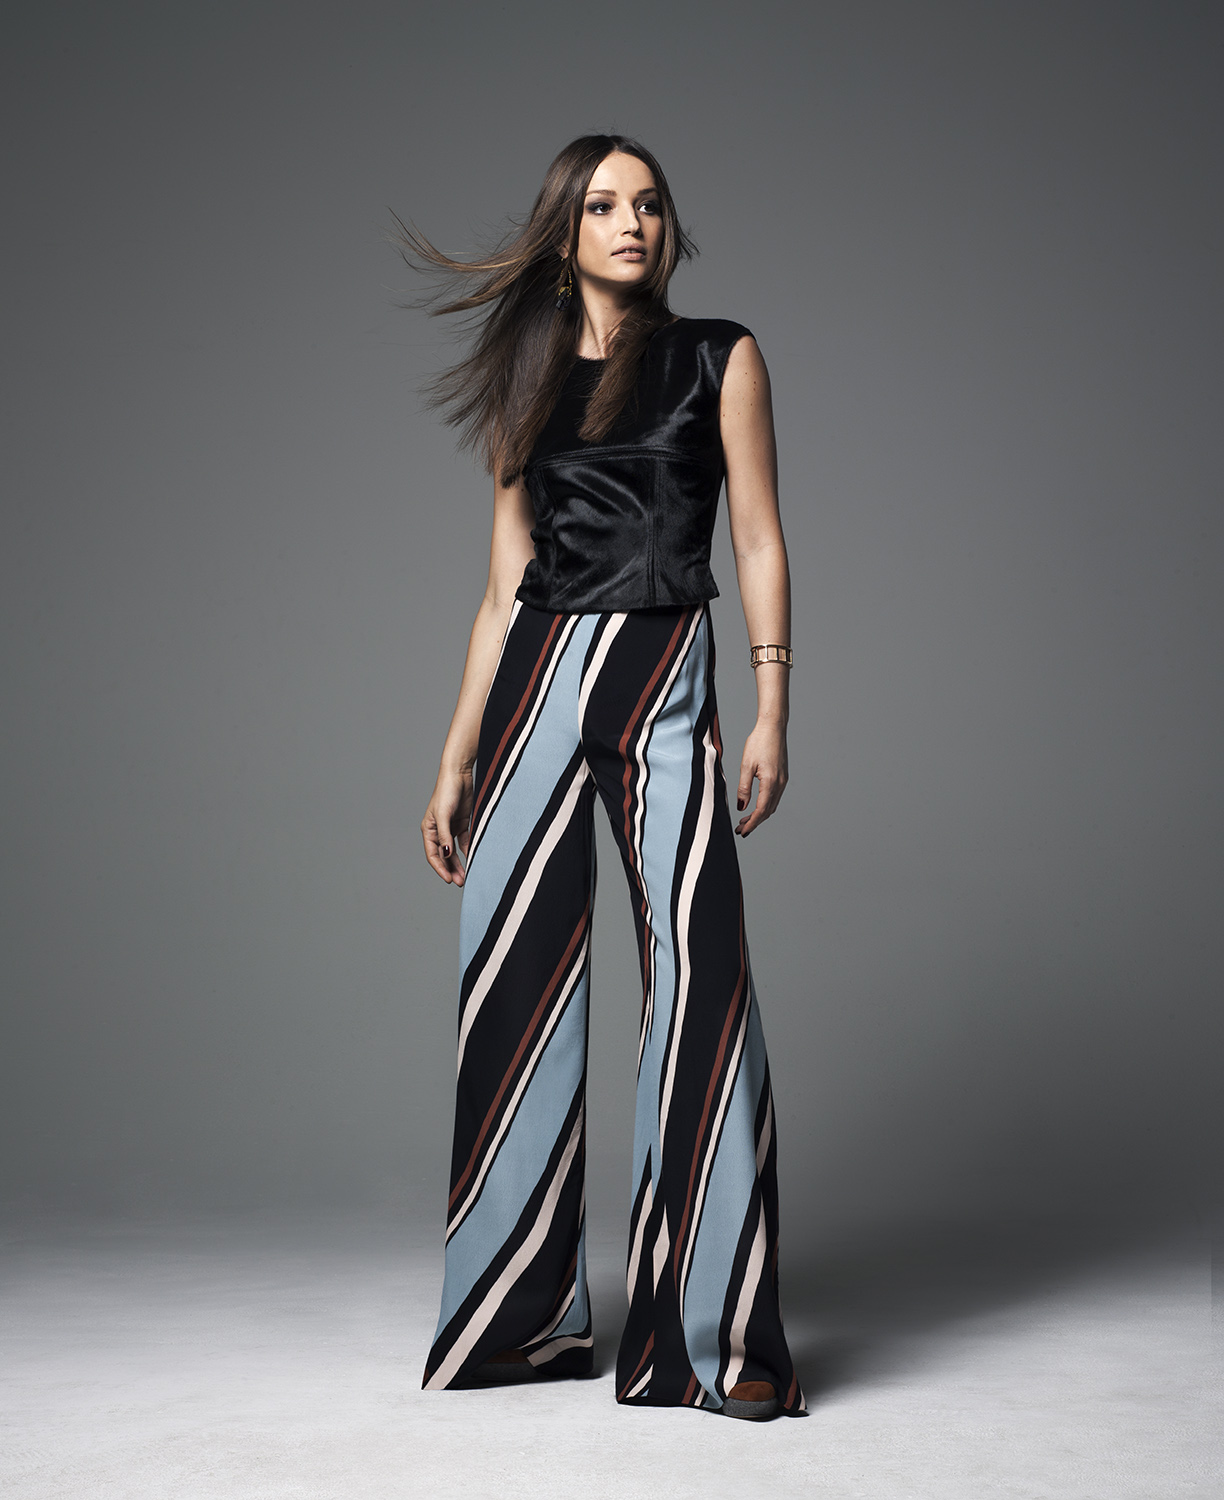 Model wearing black top and striped trousers